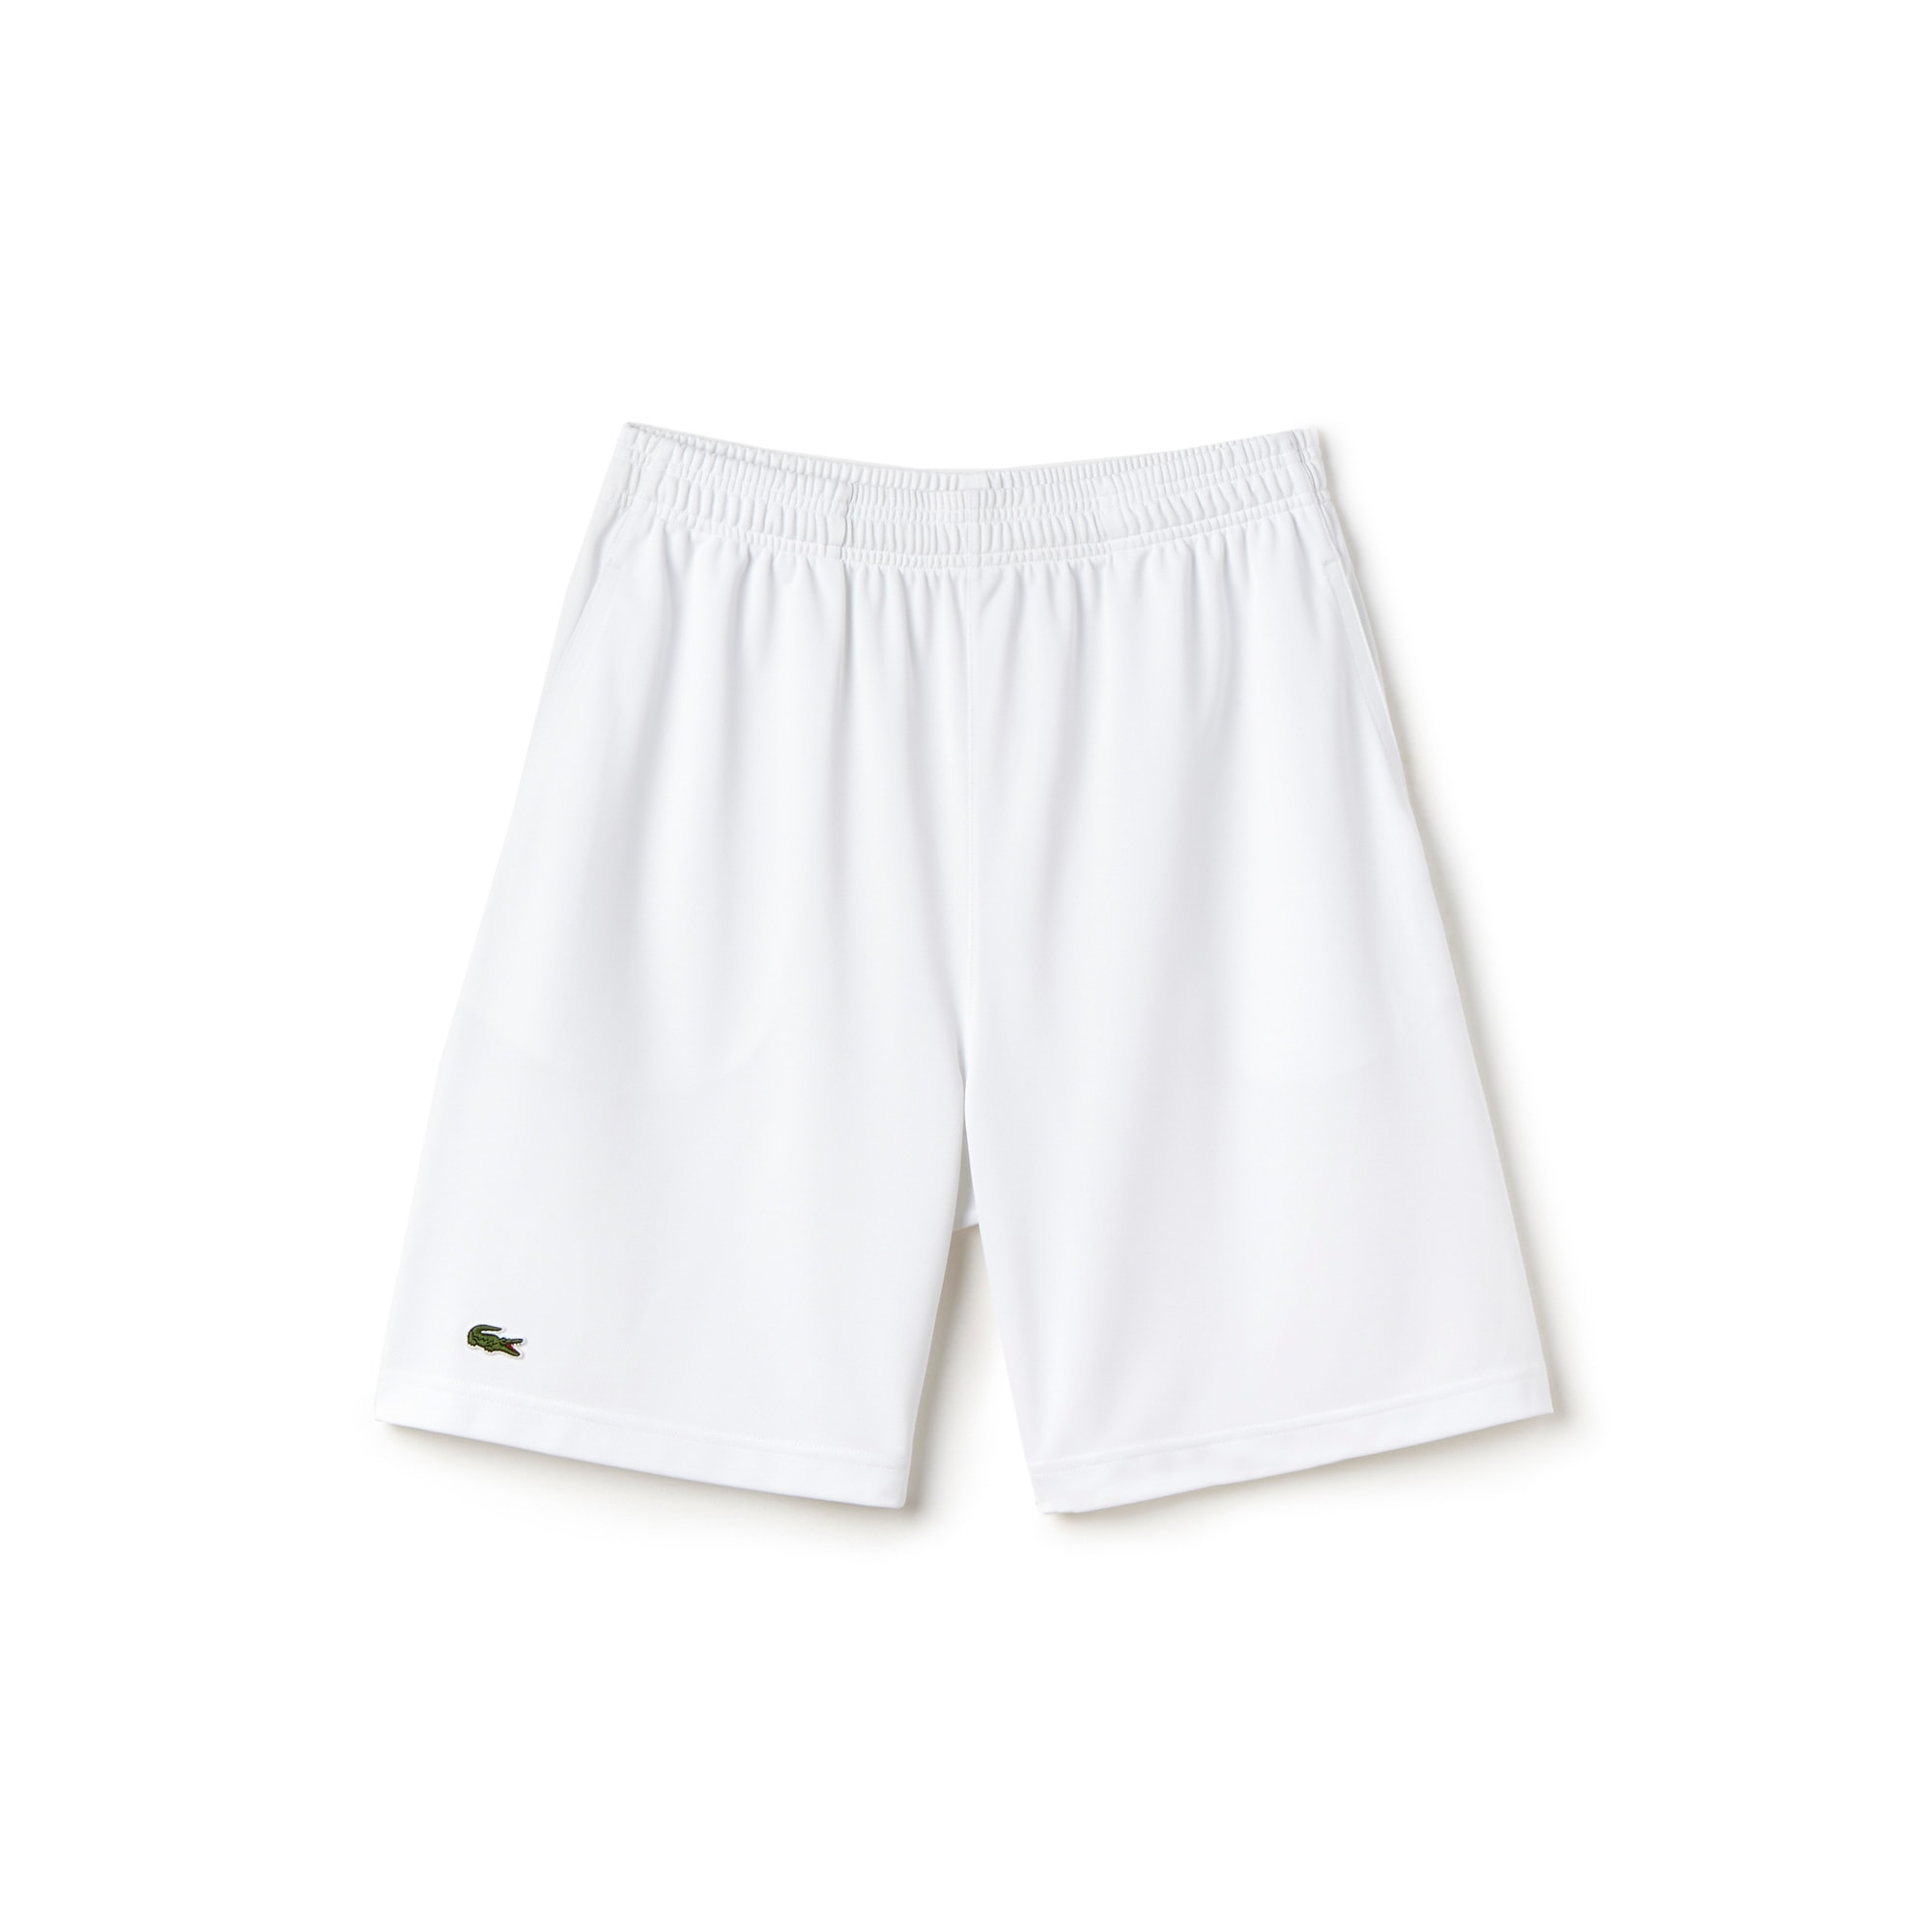 Men's SPORT Super Dry Drawstring Tennis Shorts